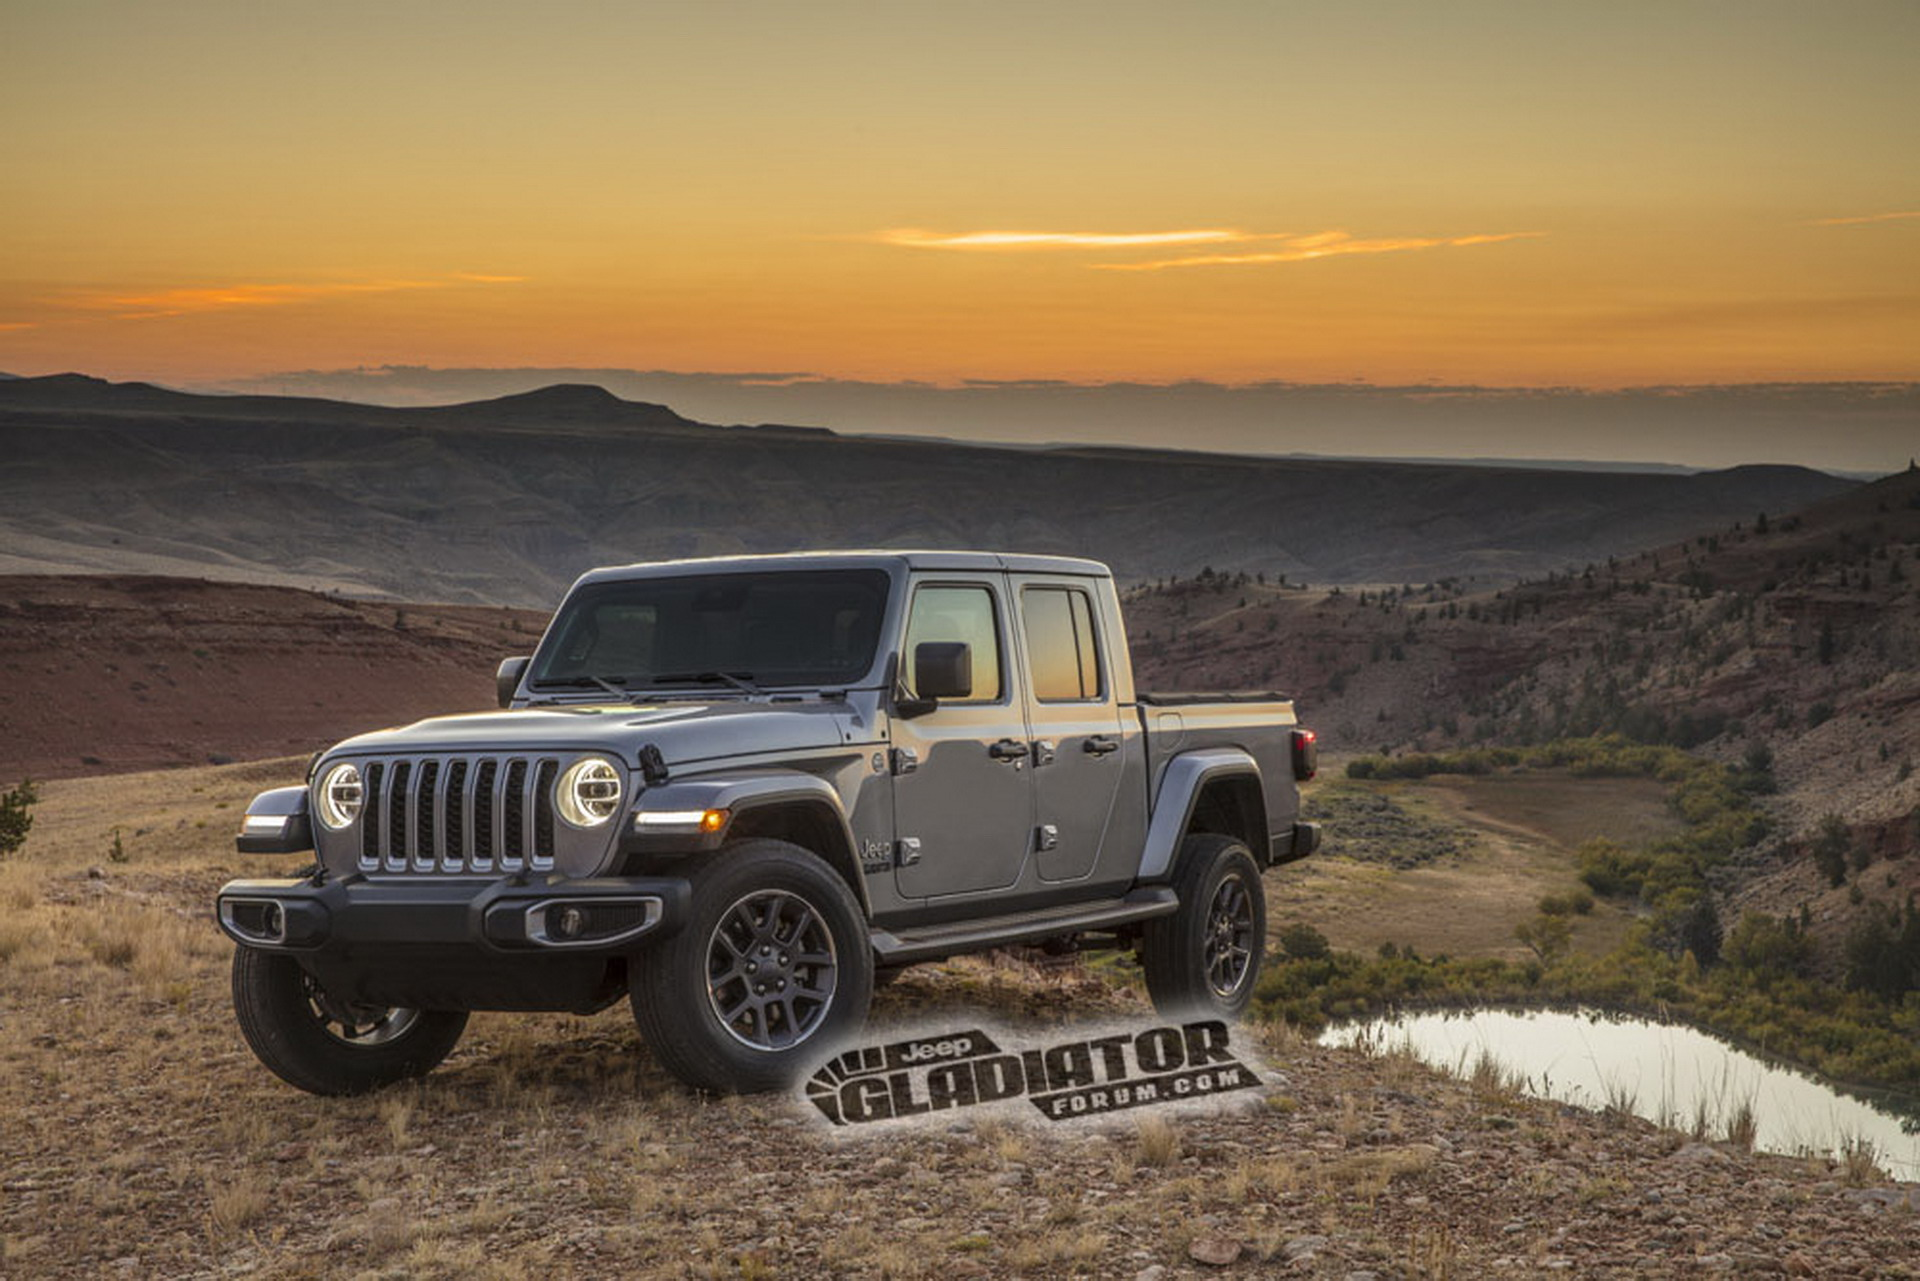 New Jeep Gladiator pick-up leaked ahead of LA show debut